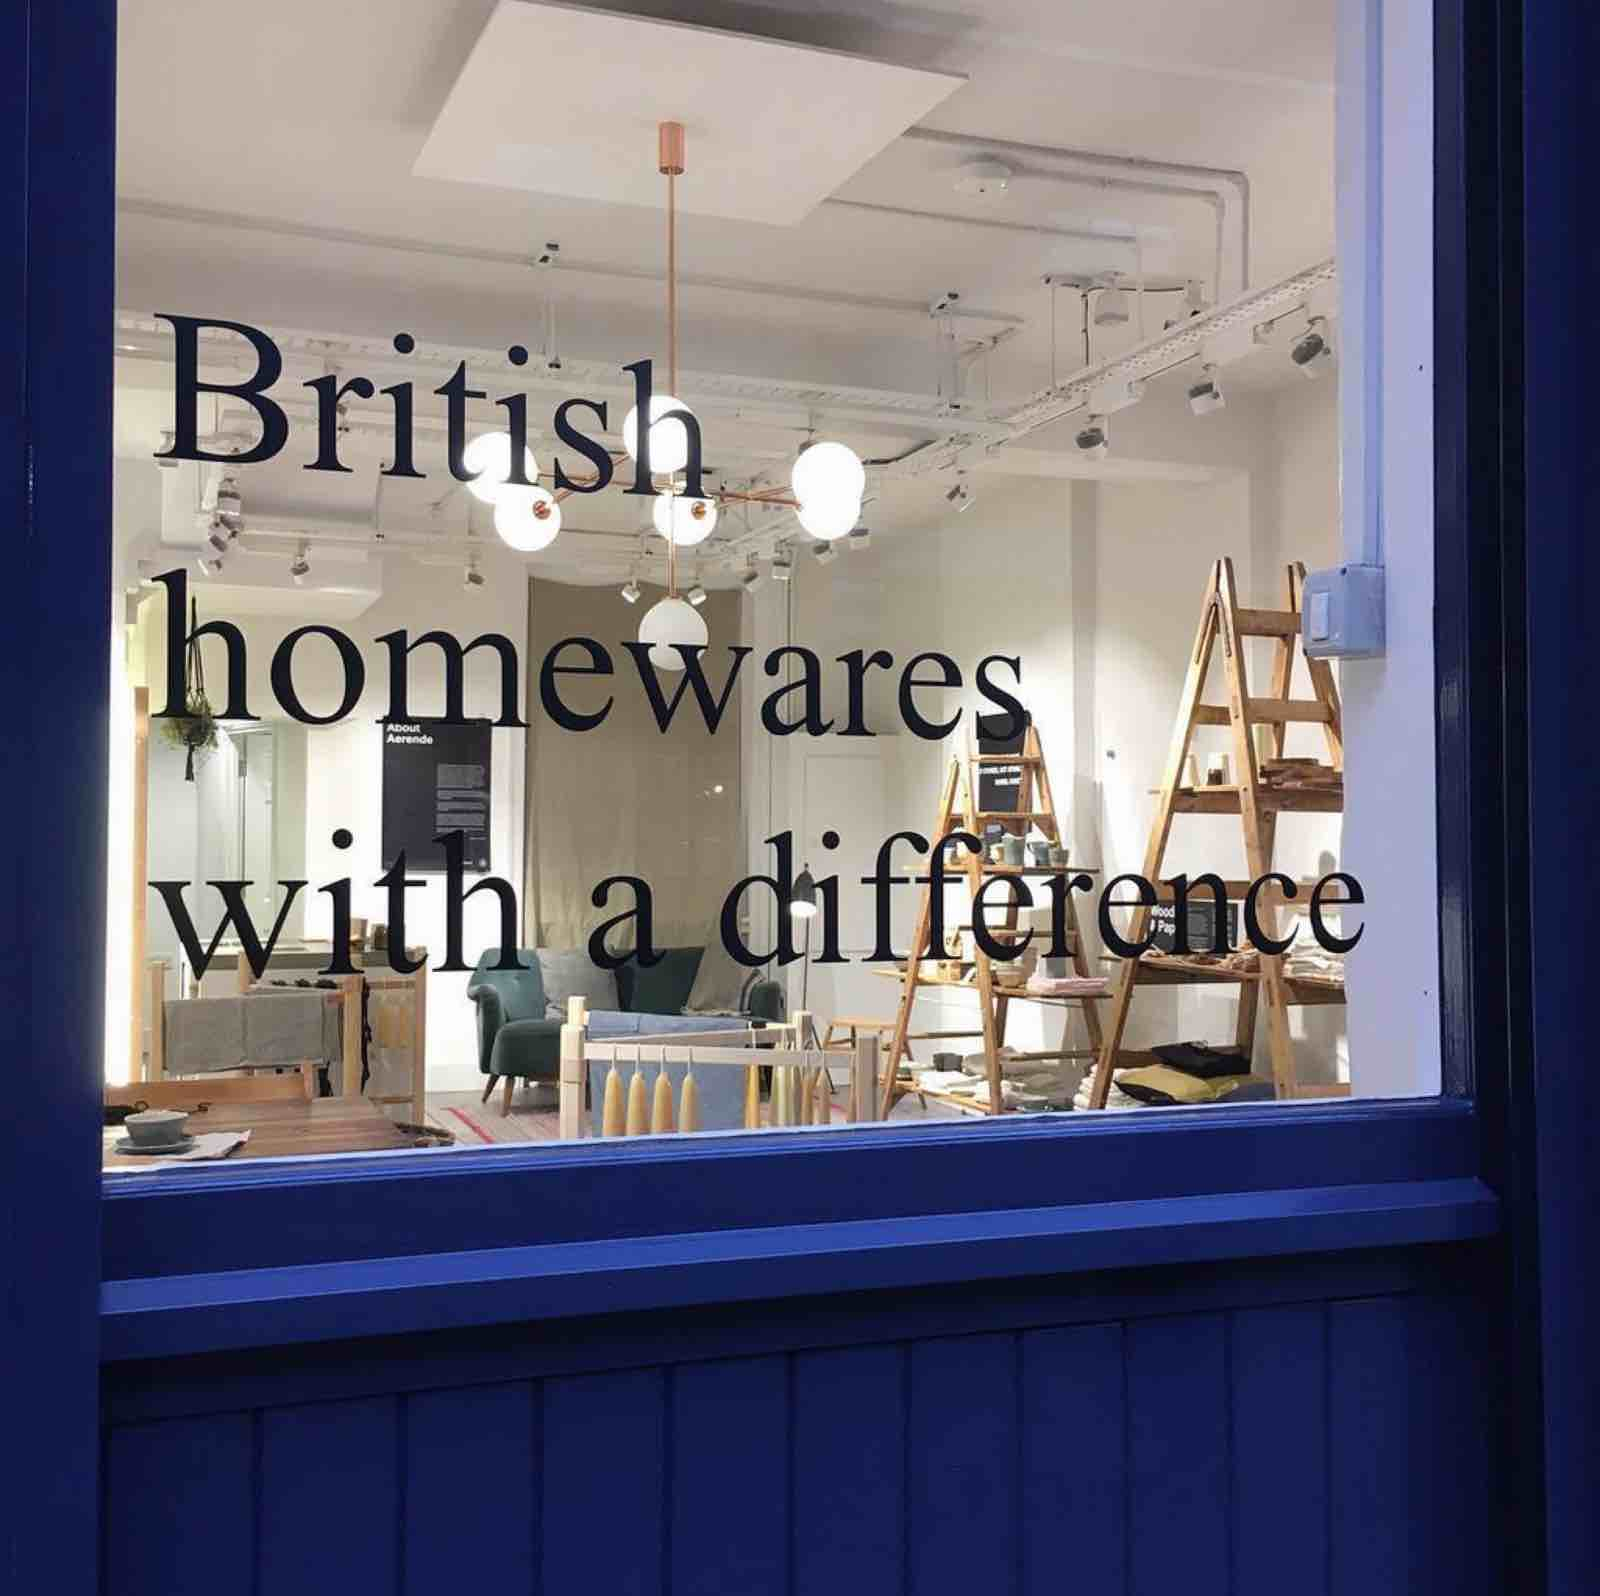 Shopfront view into space, Aerende — ethical interiors, life-improving homewares.